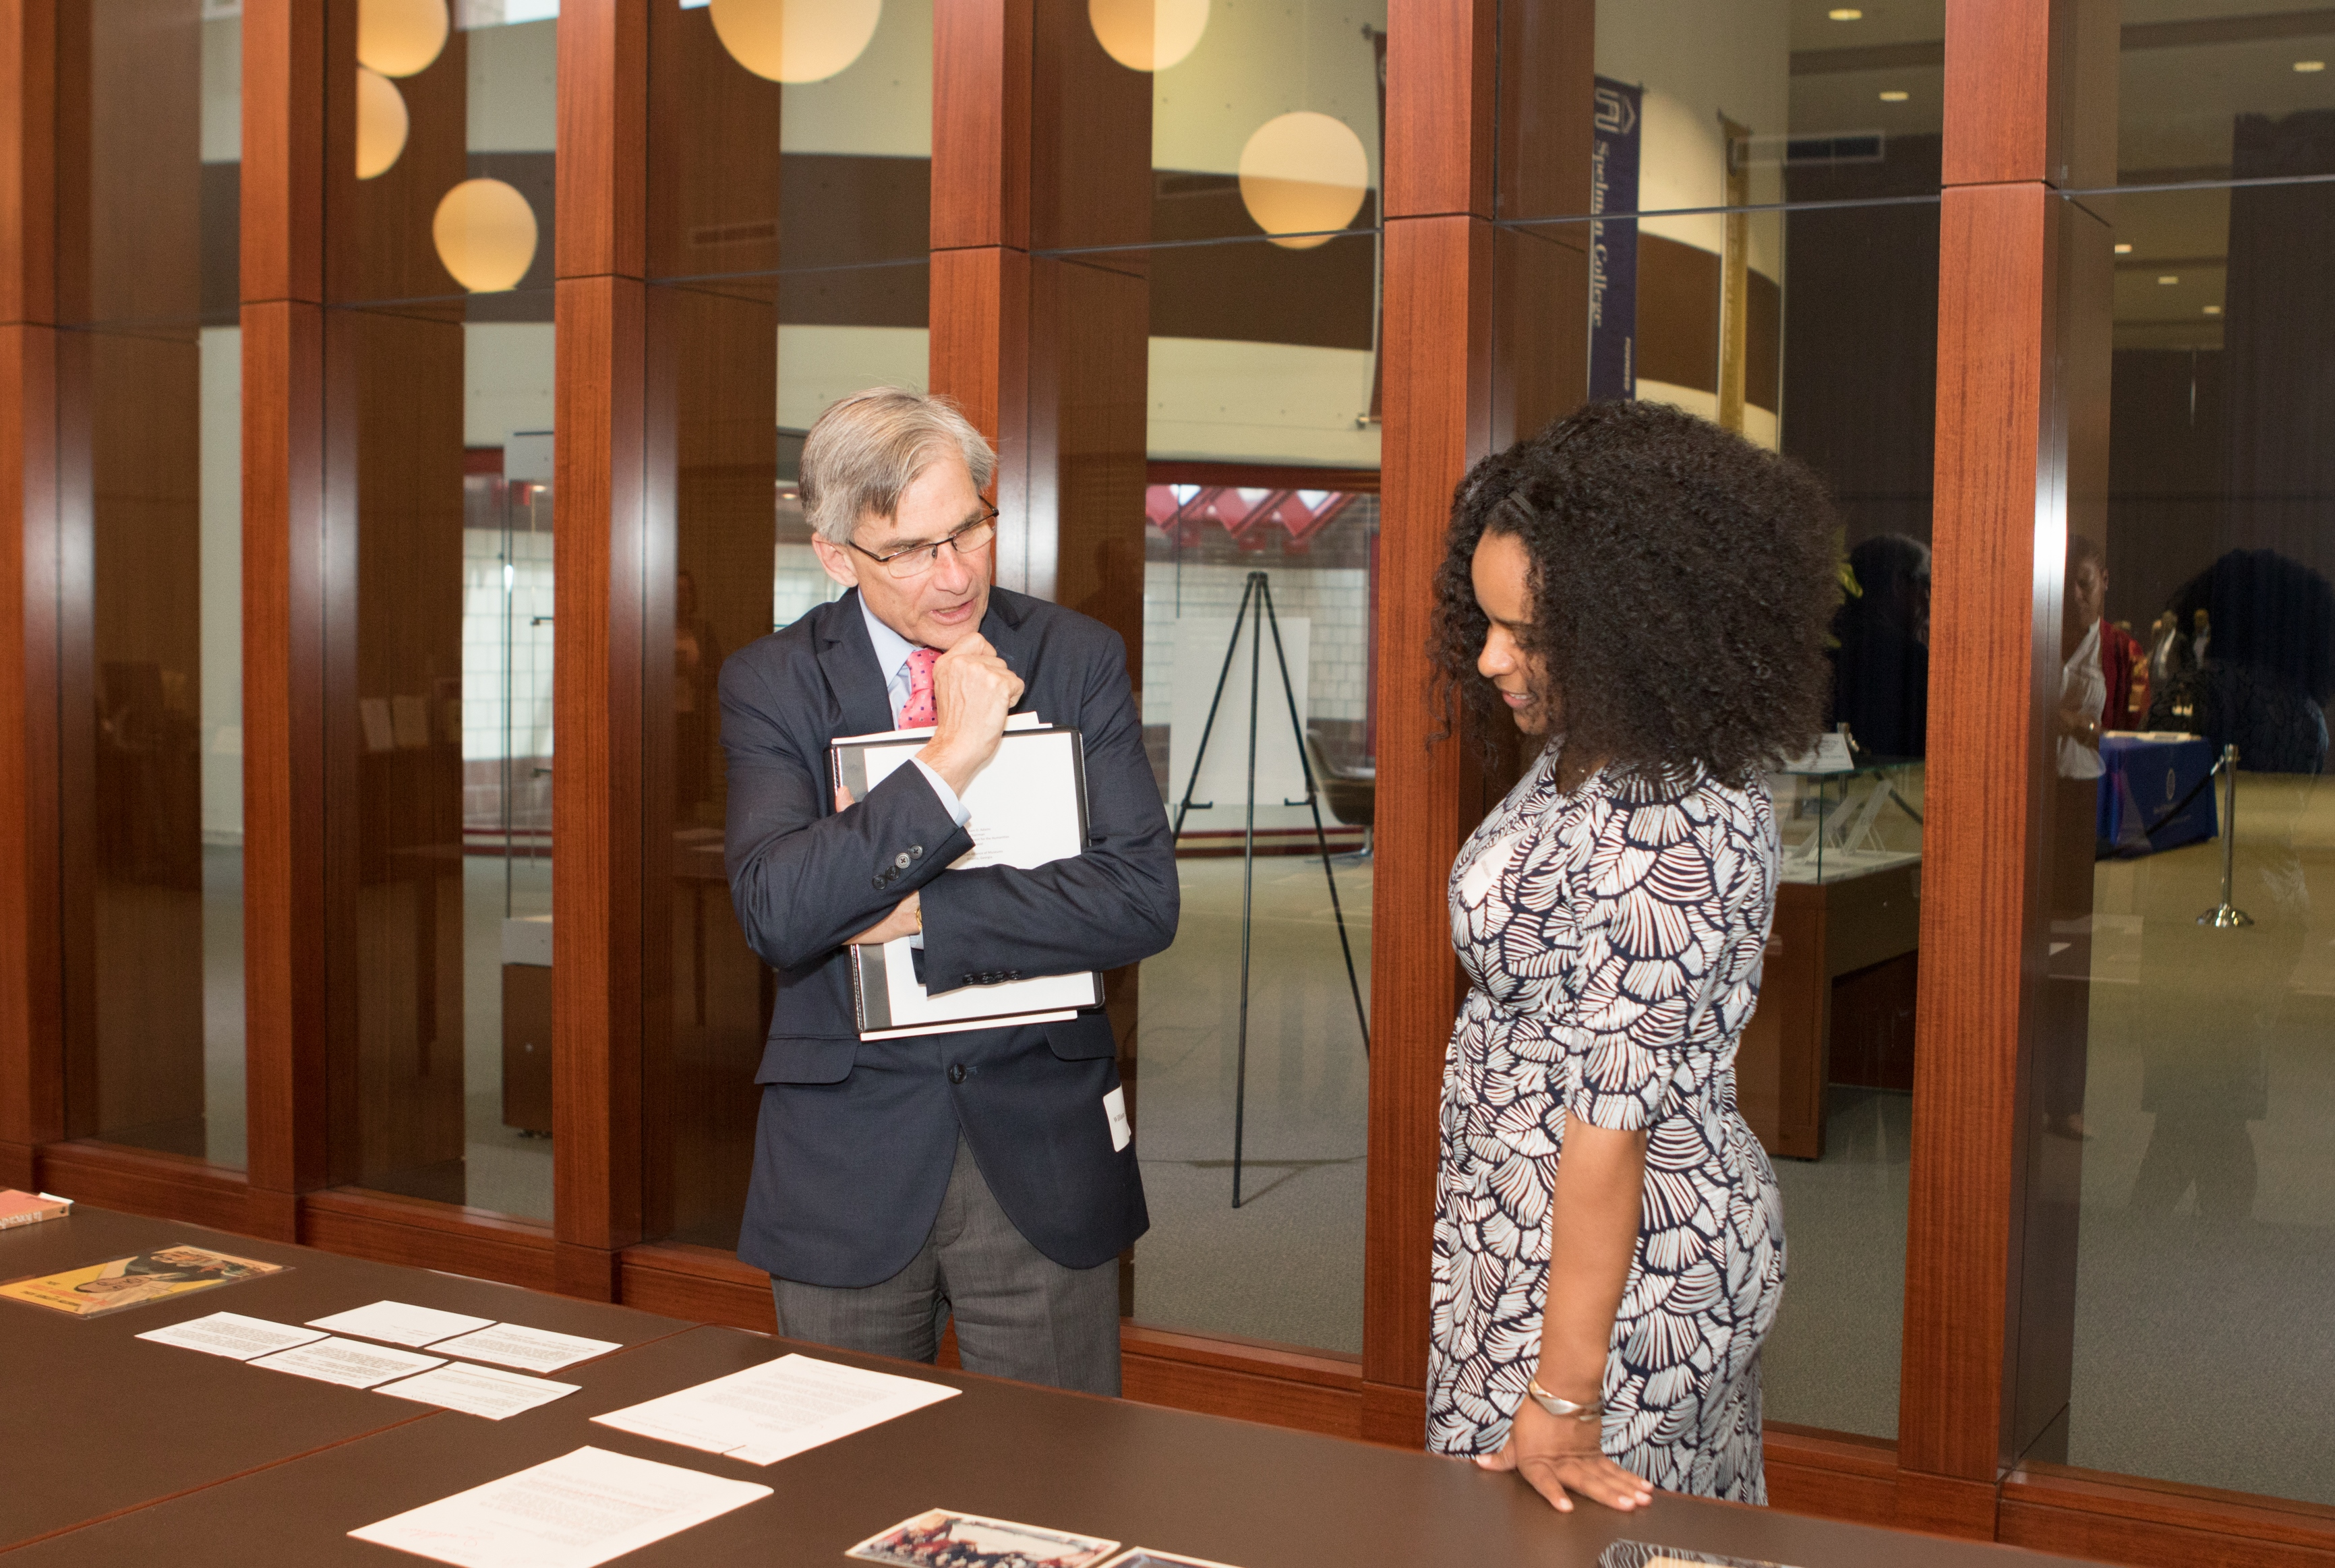 NEH chairman William Adams with Andrea Jackson, head of the AUC Woodruff Library Archives Research Center, discussing items from the King Papers collection. Credit: courtesy of Atlanta University Center Robert Woodruff Library